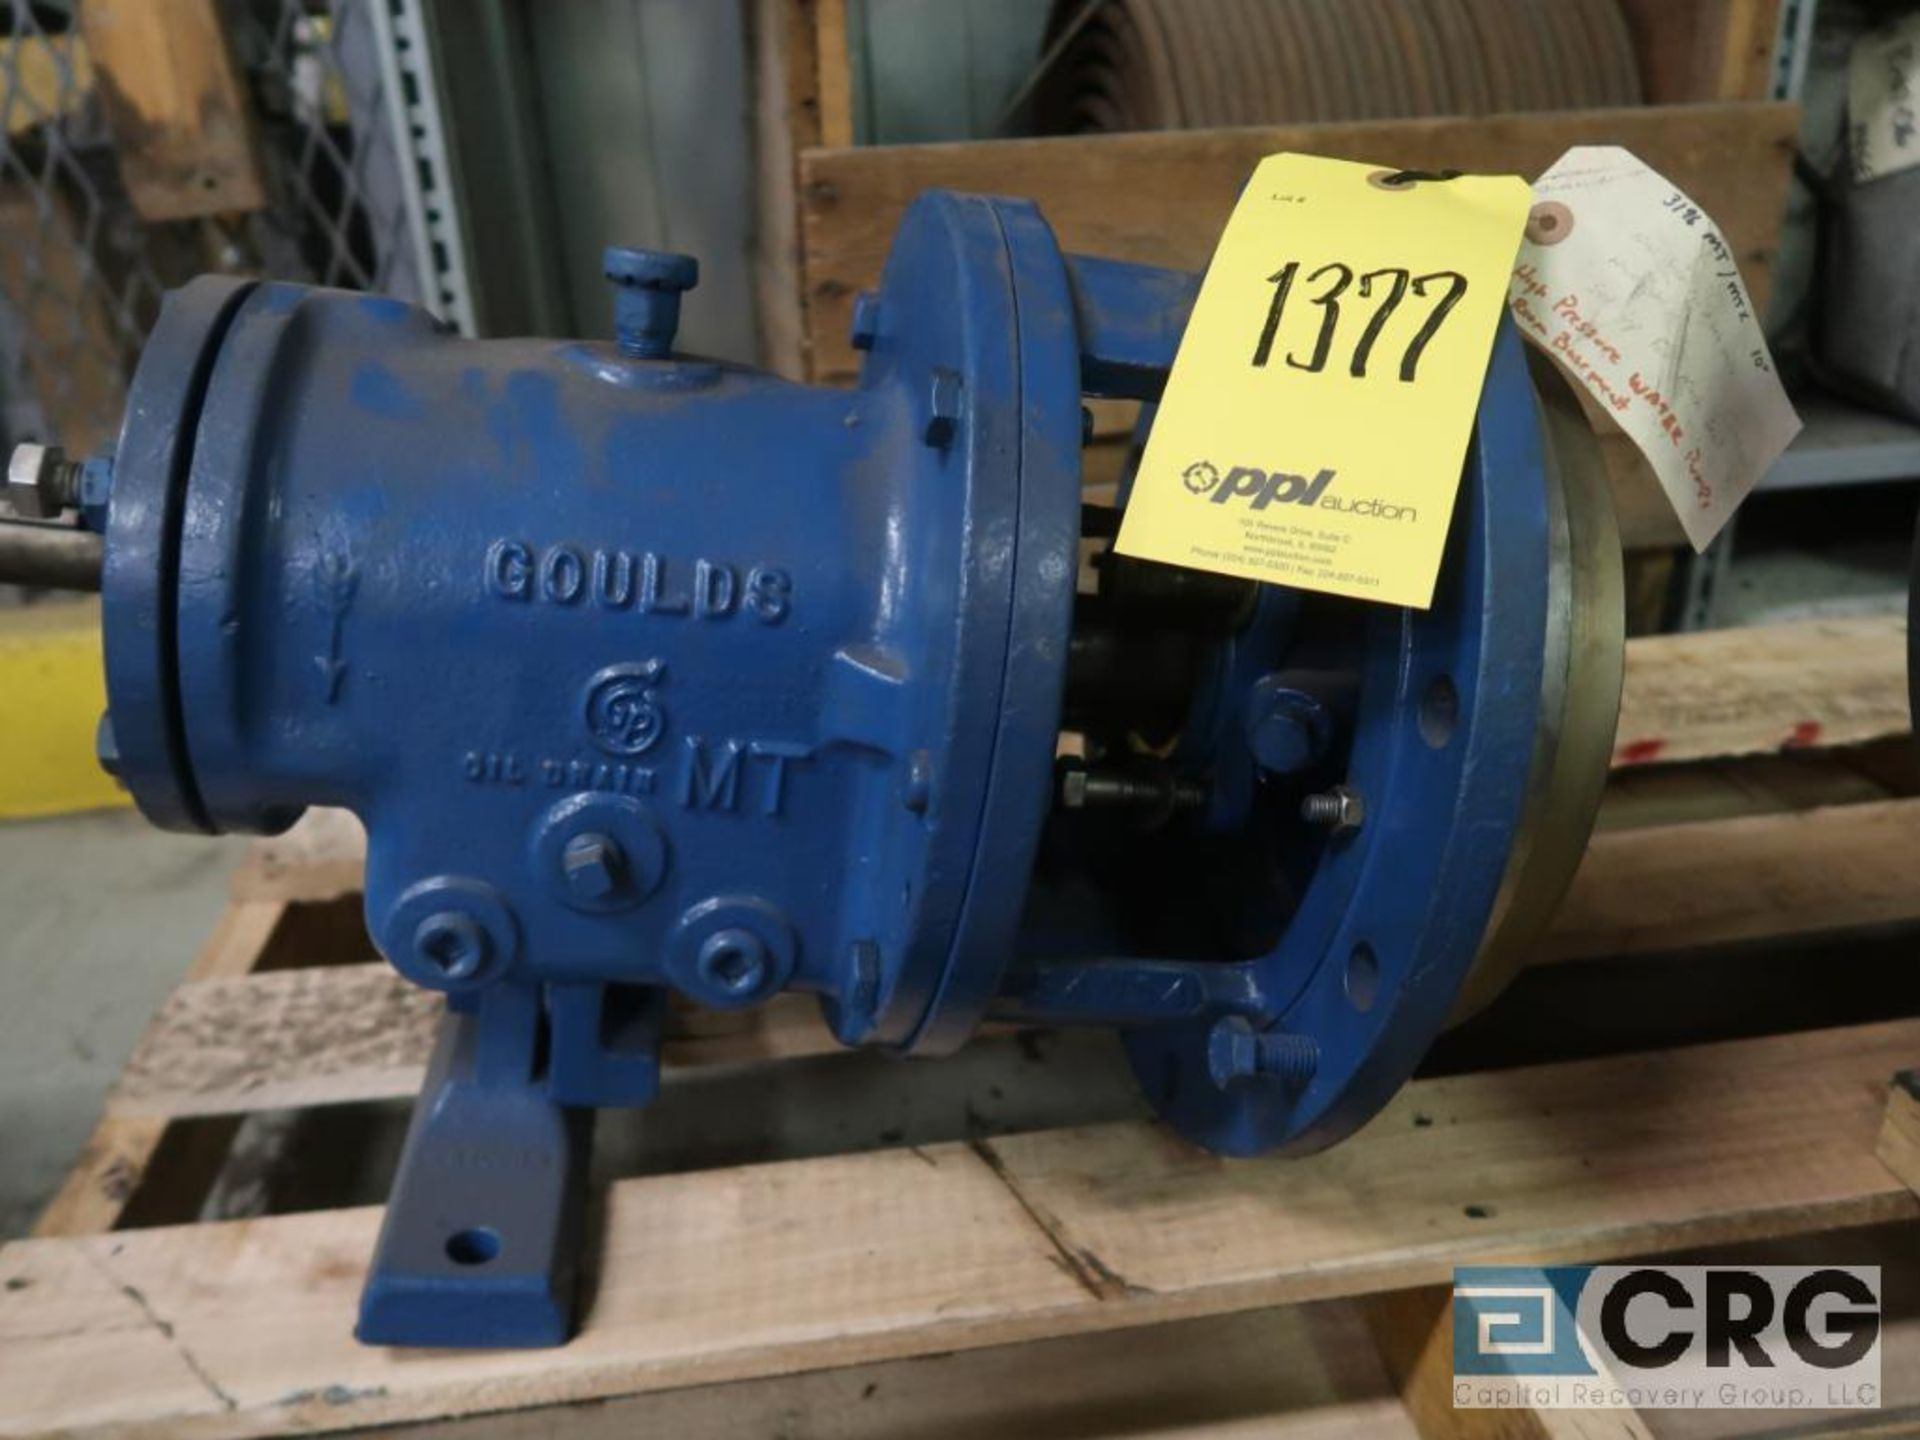 Lot of (3) Goulds 3196 pumps, (2) 13 in.-(1) LTX & (1) MTX, and (1) 10 in. MT/MTX (Basement Stores) - Image 4 of 4